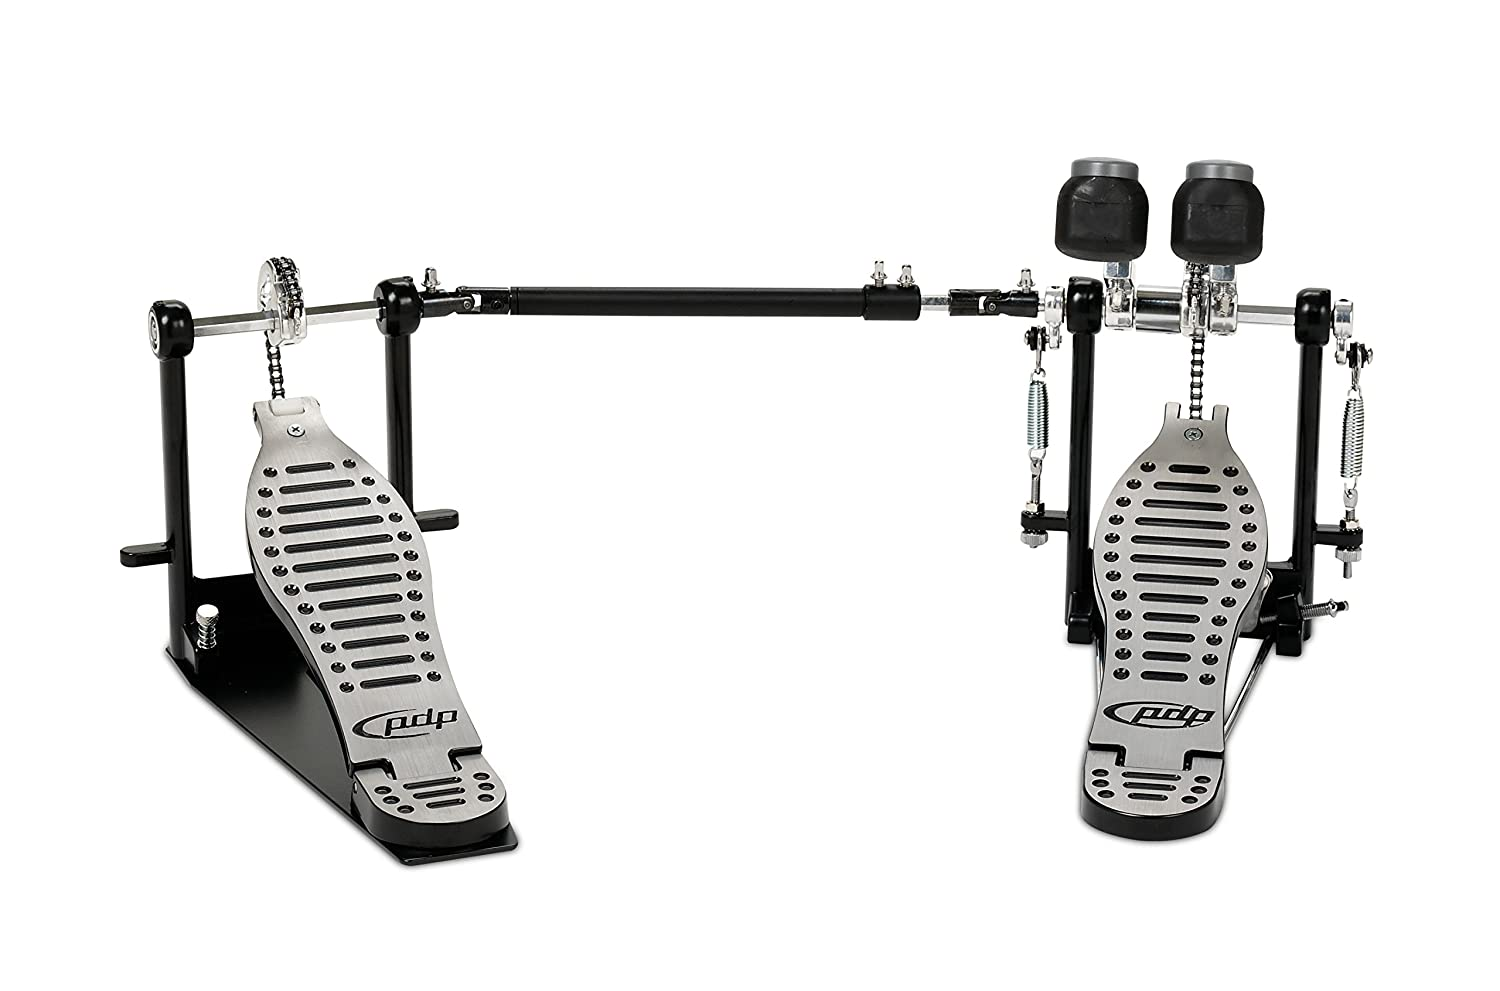 PDP By DW 400 Series Double Pedal Drum Workshop Inc. PDDP402